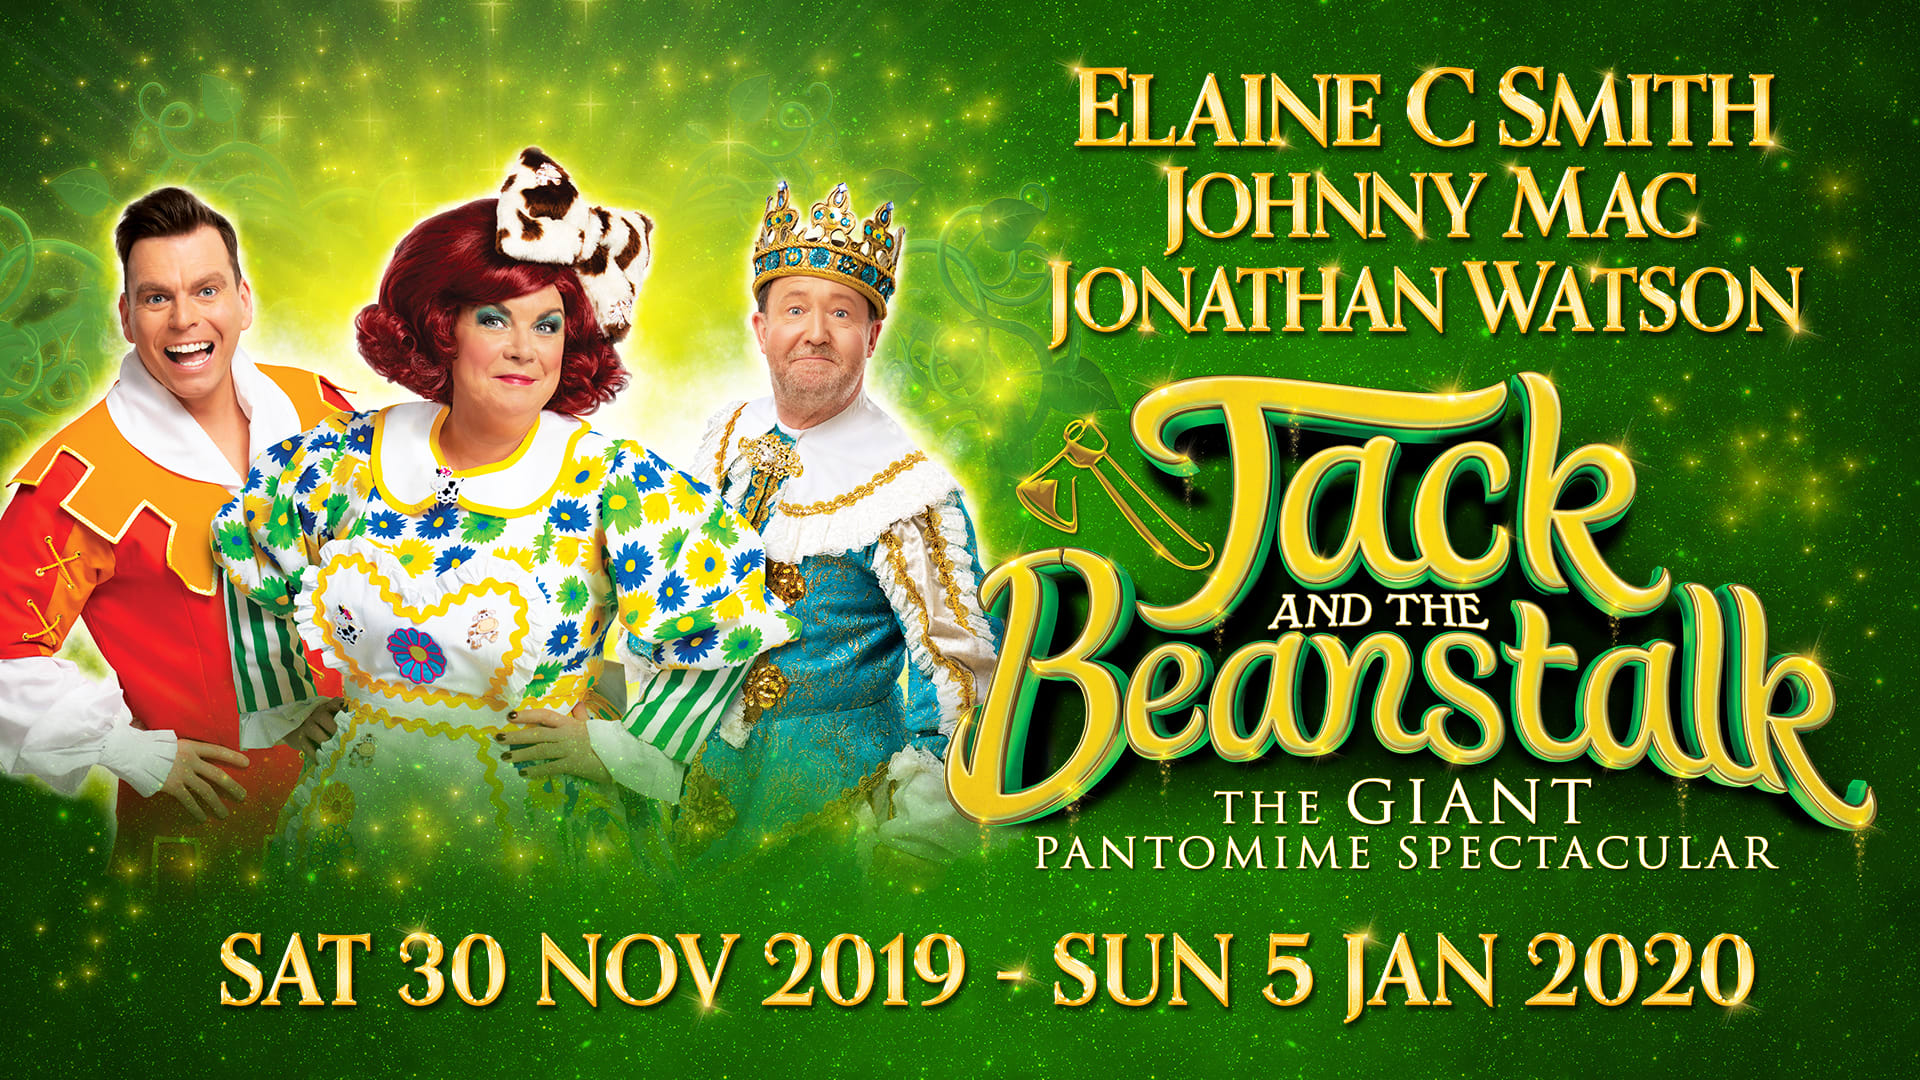 Jack and The Beanstalk at King's Theatre, Glasgow